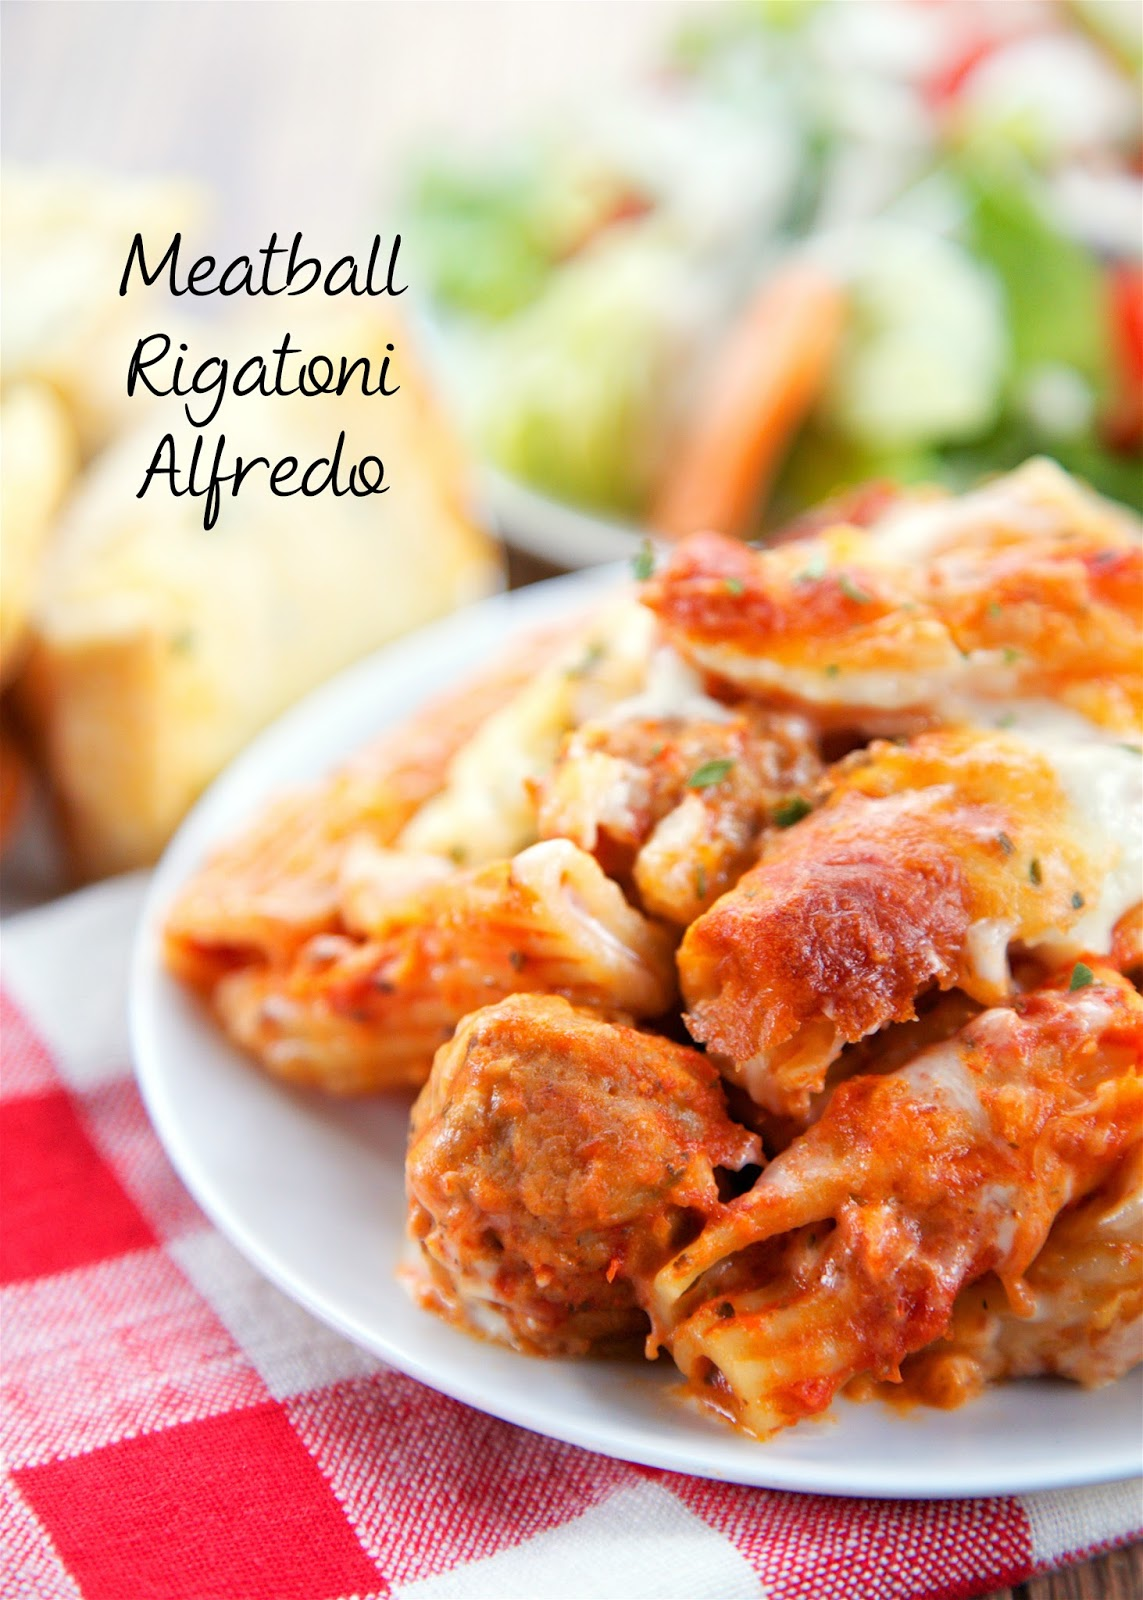 Meatball Rigatoni Alfredo - AMAZING! So simple to make - only 5 ingredients. Can make ahead and freeze for later. Meatballs, rigatoni, spaghetti sauce, Alfredo sauce and mozzarella cheese. The creamy Alfredo sauce puts this dish over the top! All you need is a side salad and some crust garlic bread to complete this easy weeknight meal.